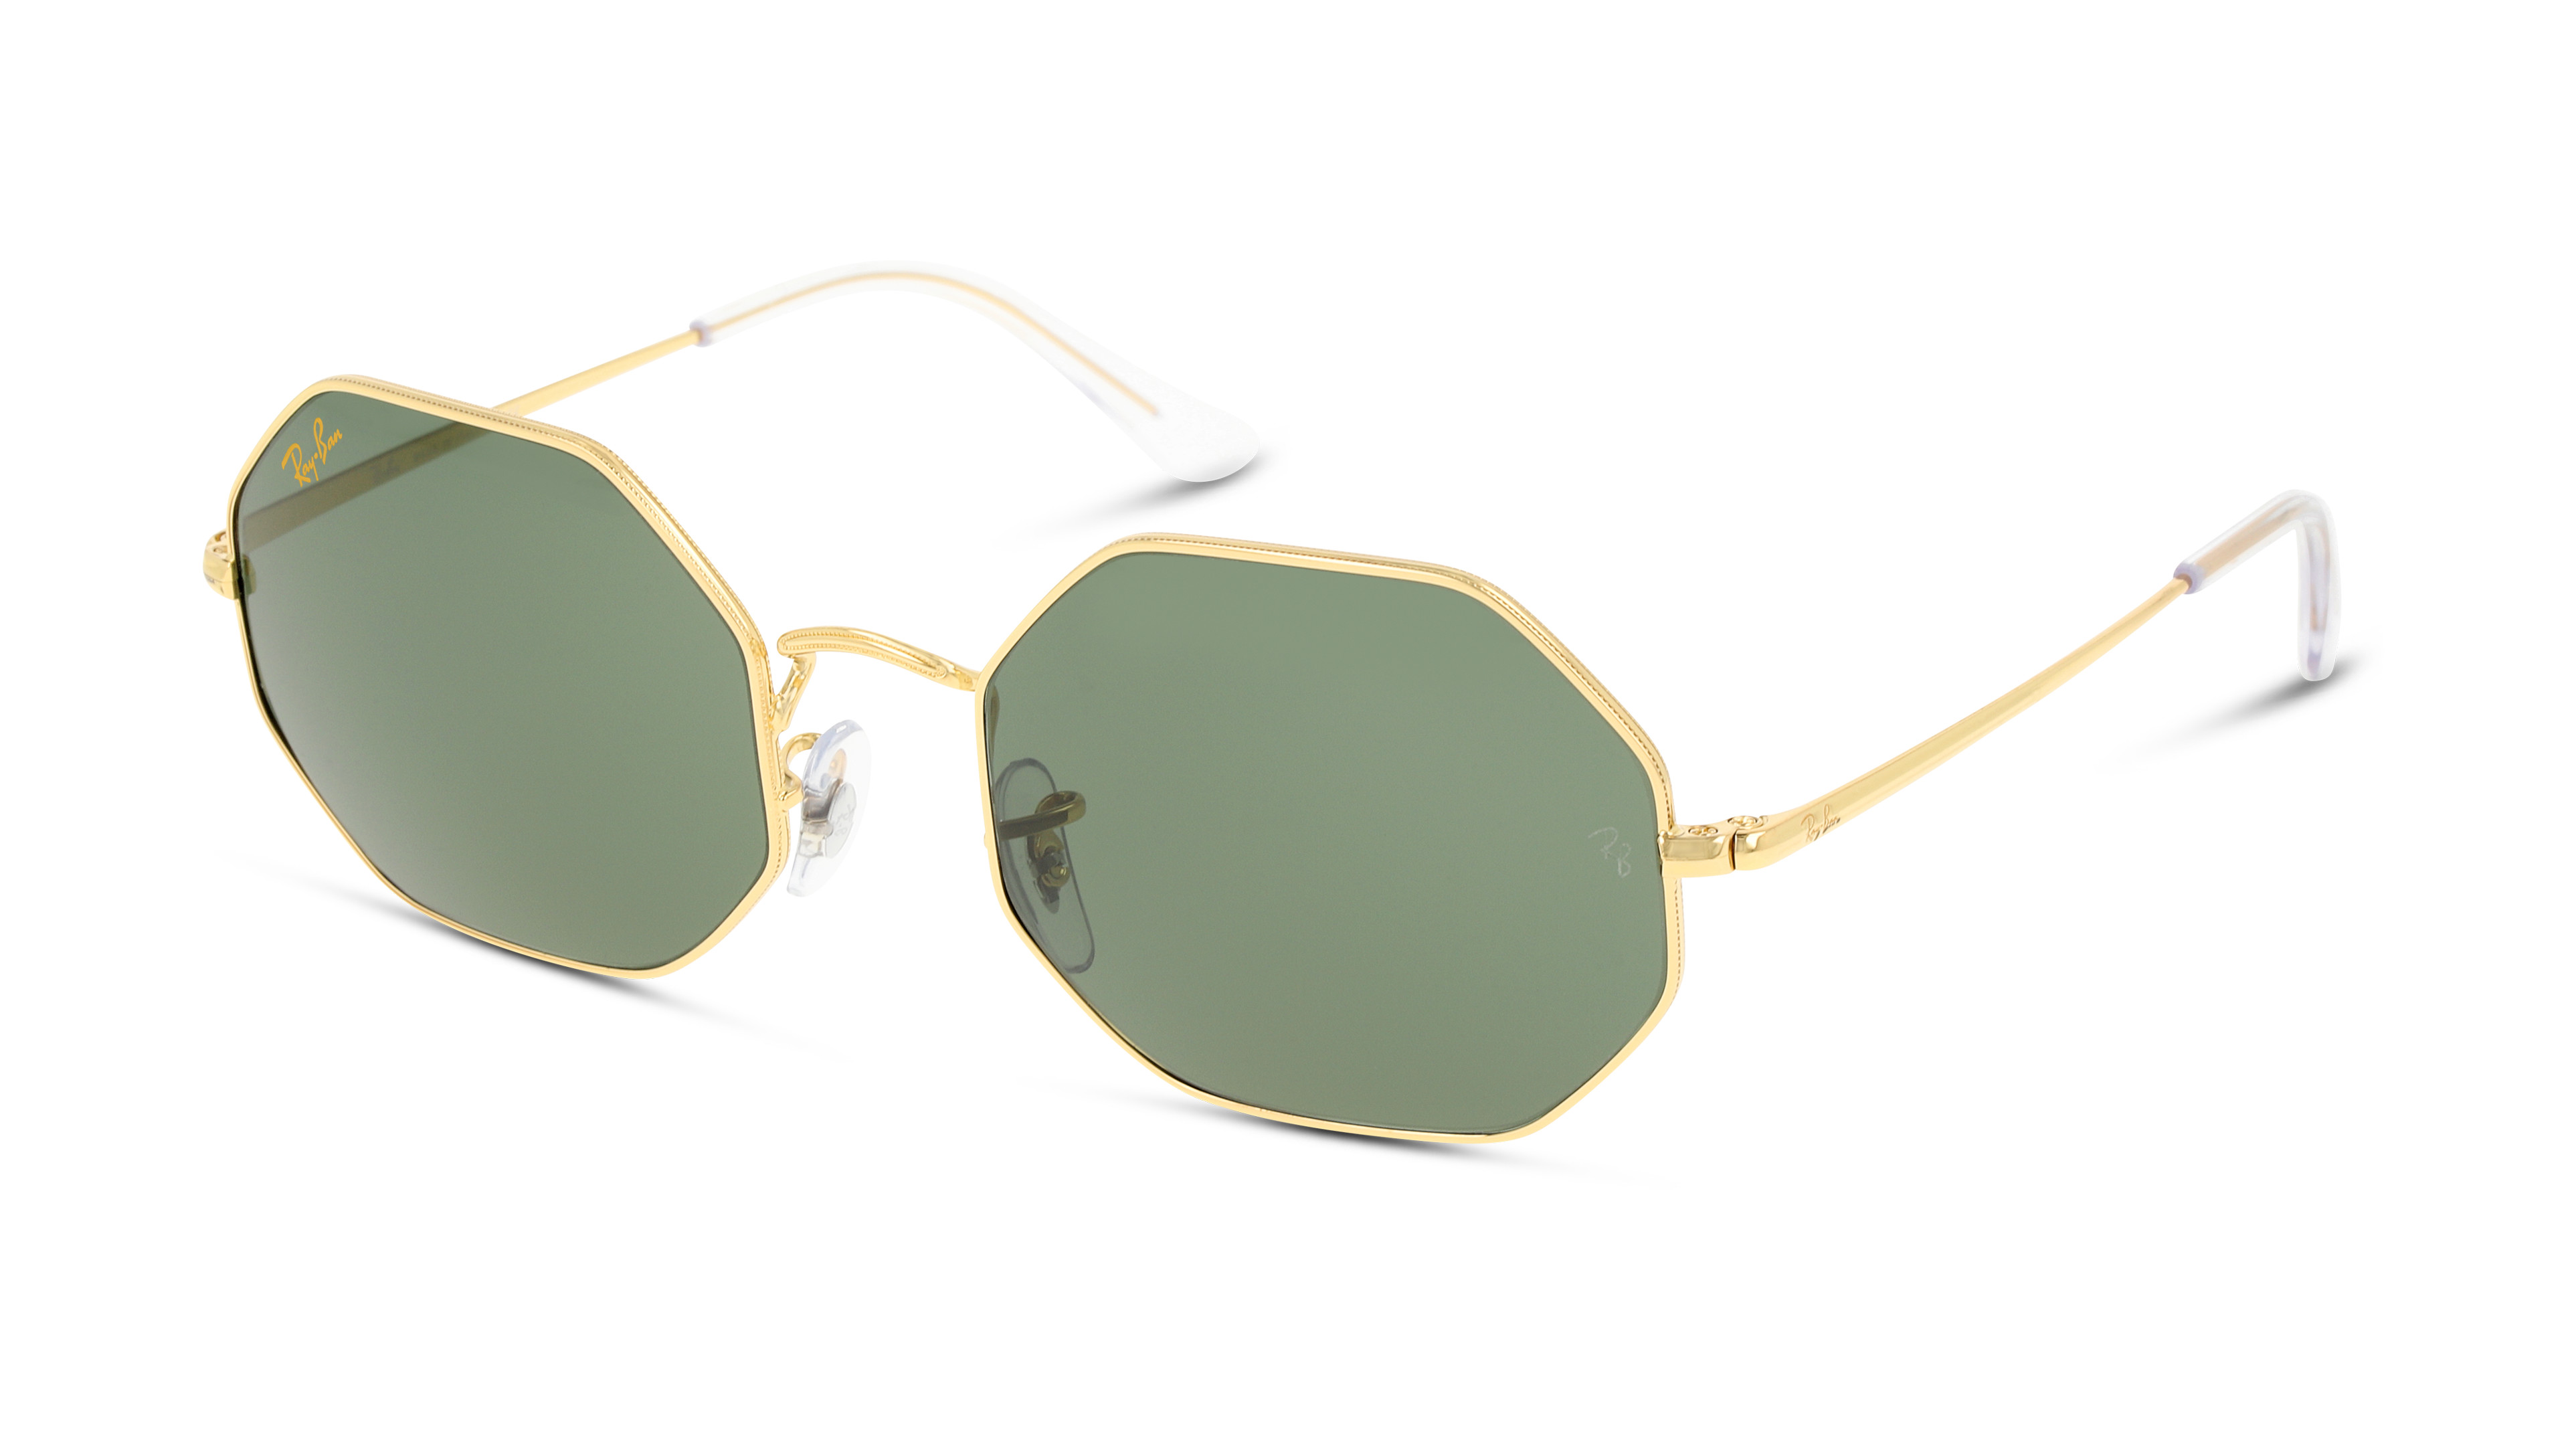 8056597199933-angle-Ray-Ban-Sonnenbrille-0rb1972-Octagon-gold